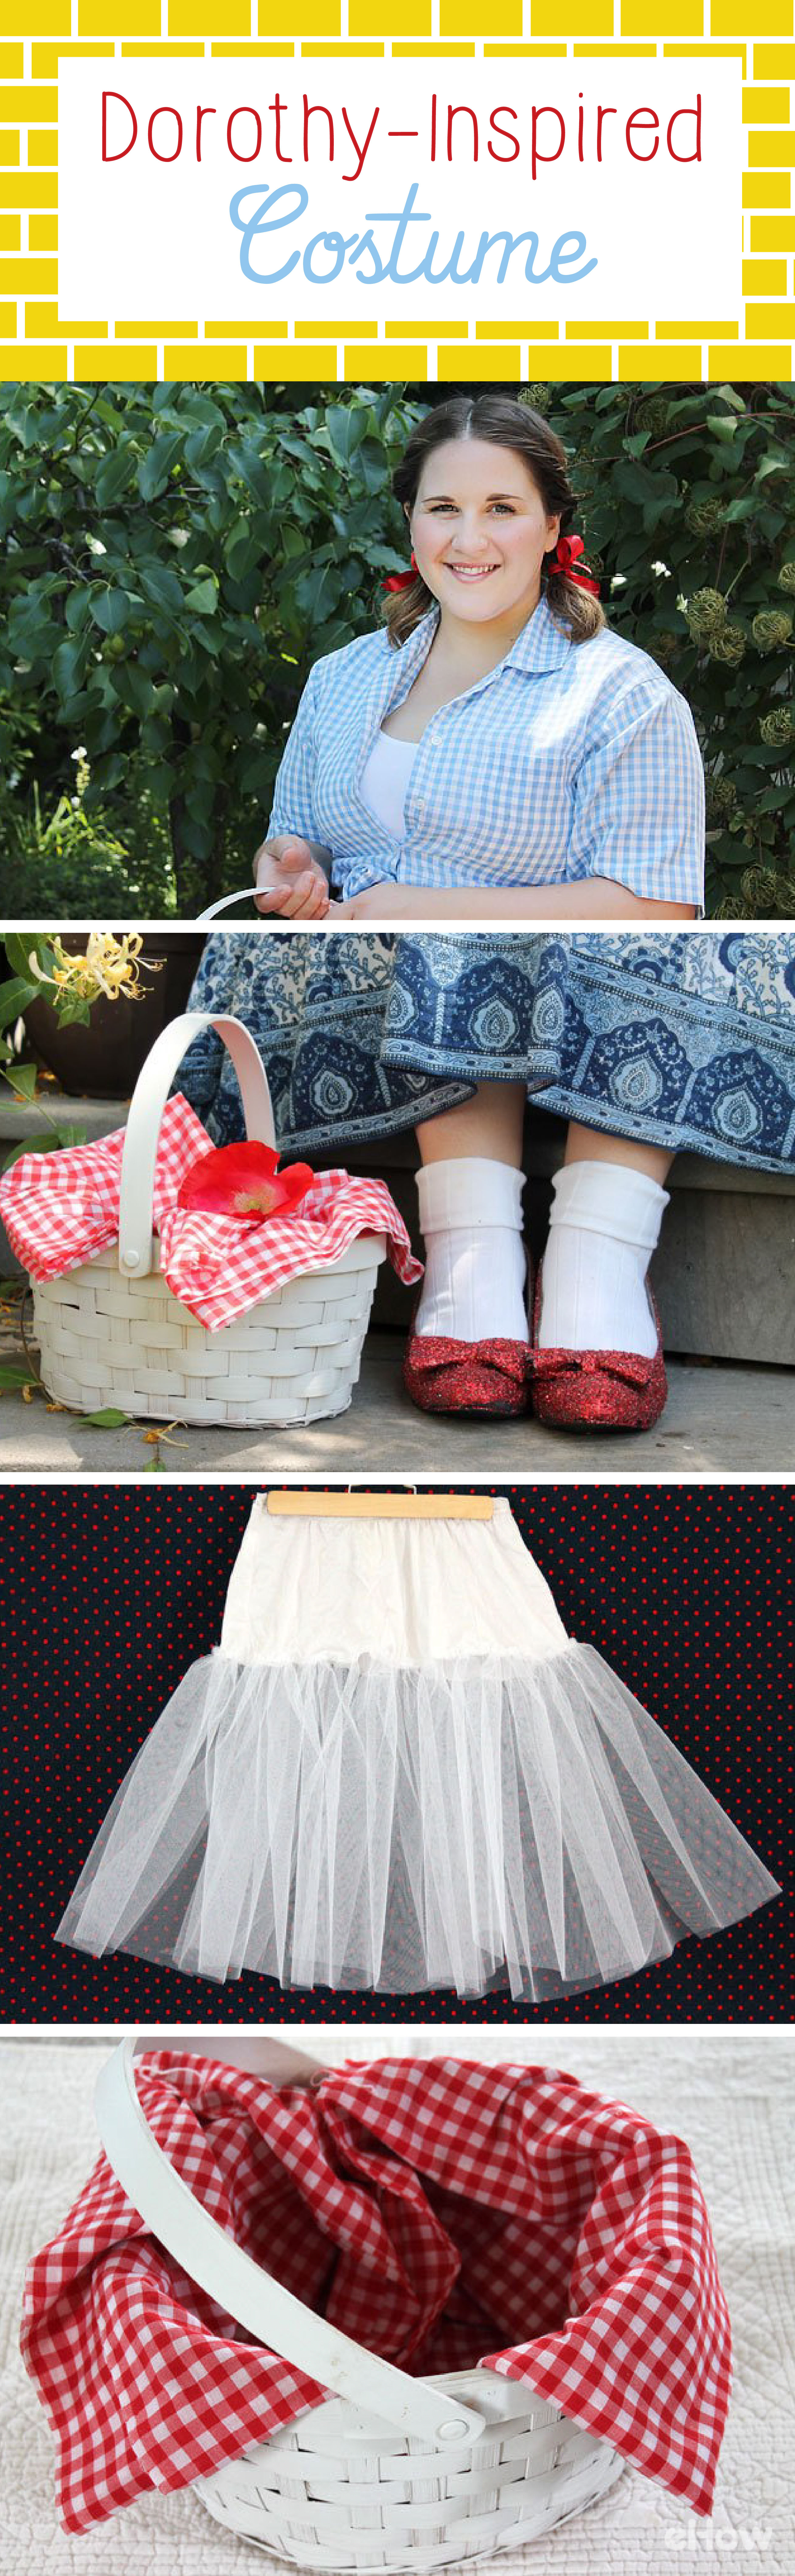 DIY No-Sew Dorothy-Inspired Costume | Costumes, Halloween costumes ...